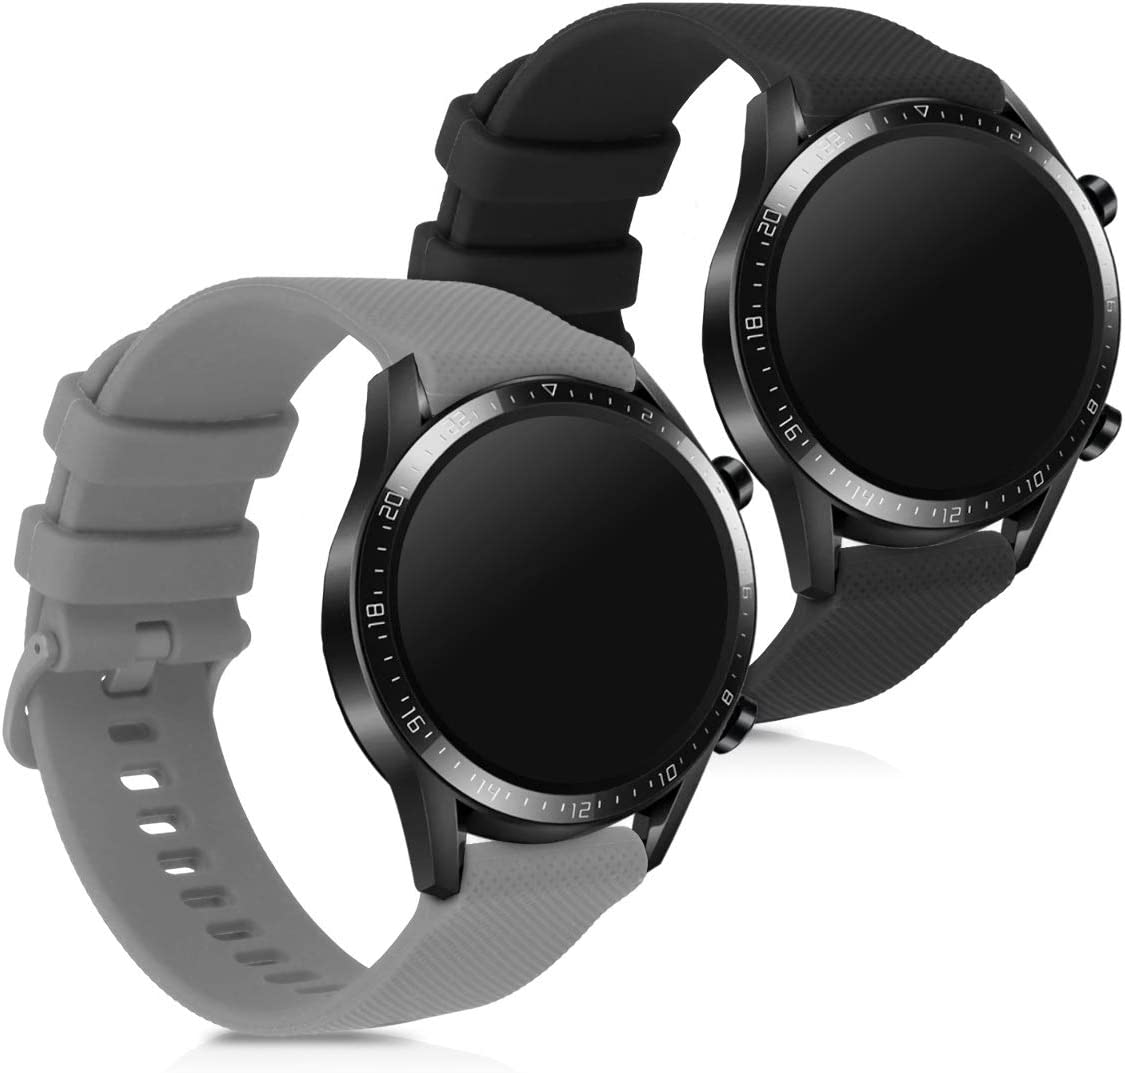 kwmobile Watch Bands Compatible with - W 42mm Ranking TOP9 Washington Mall GT2 Huawei